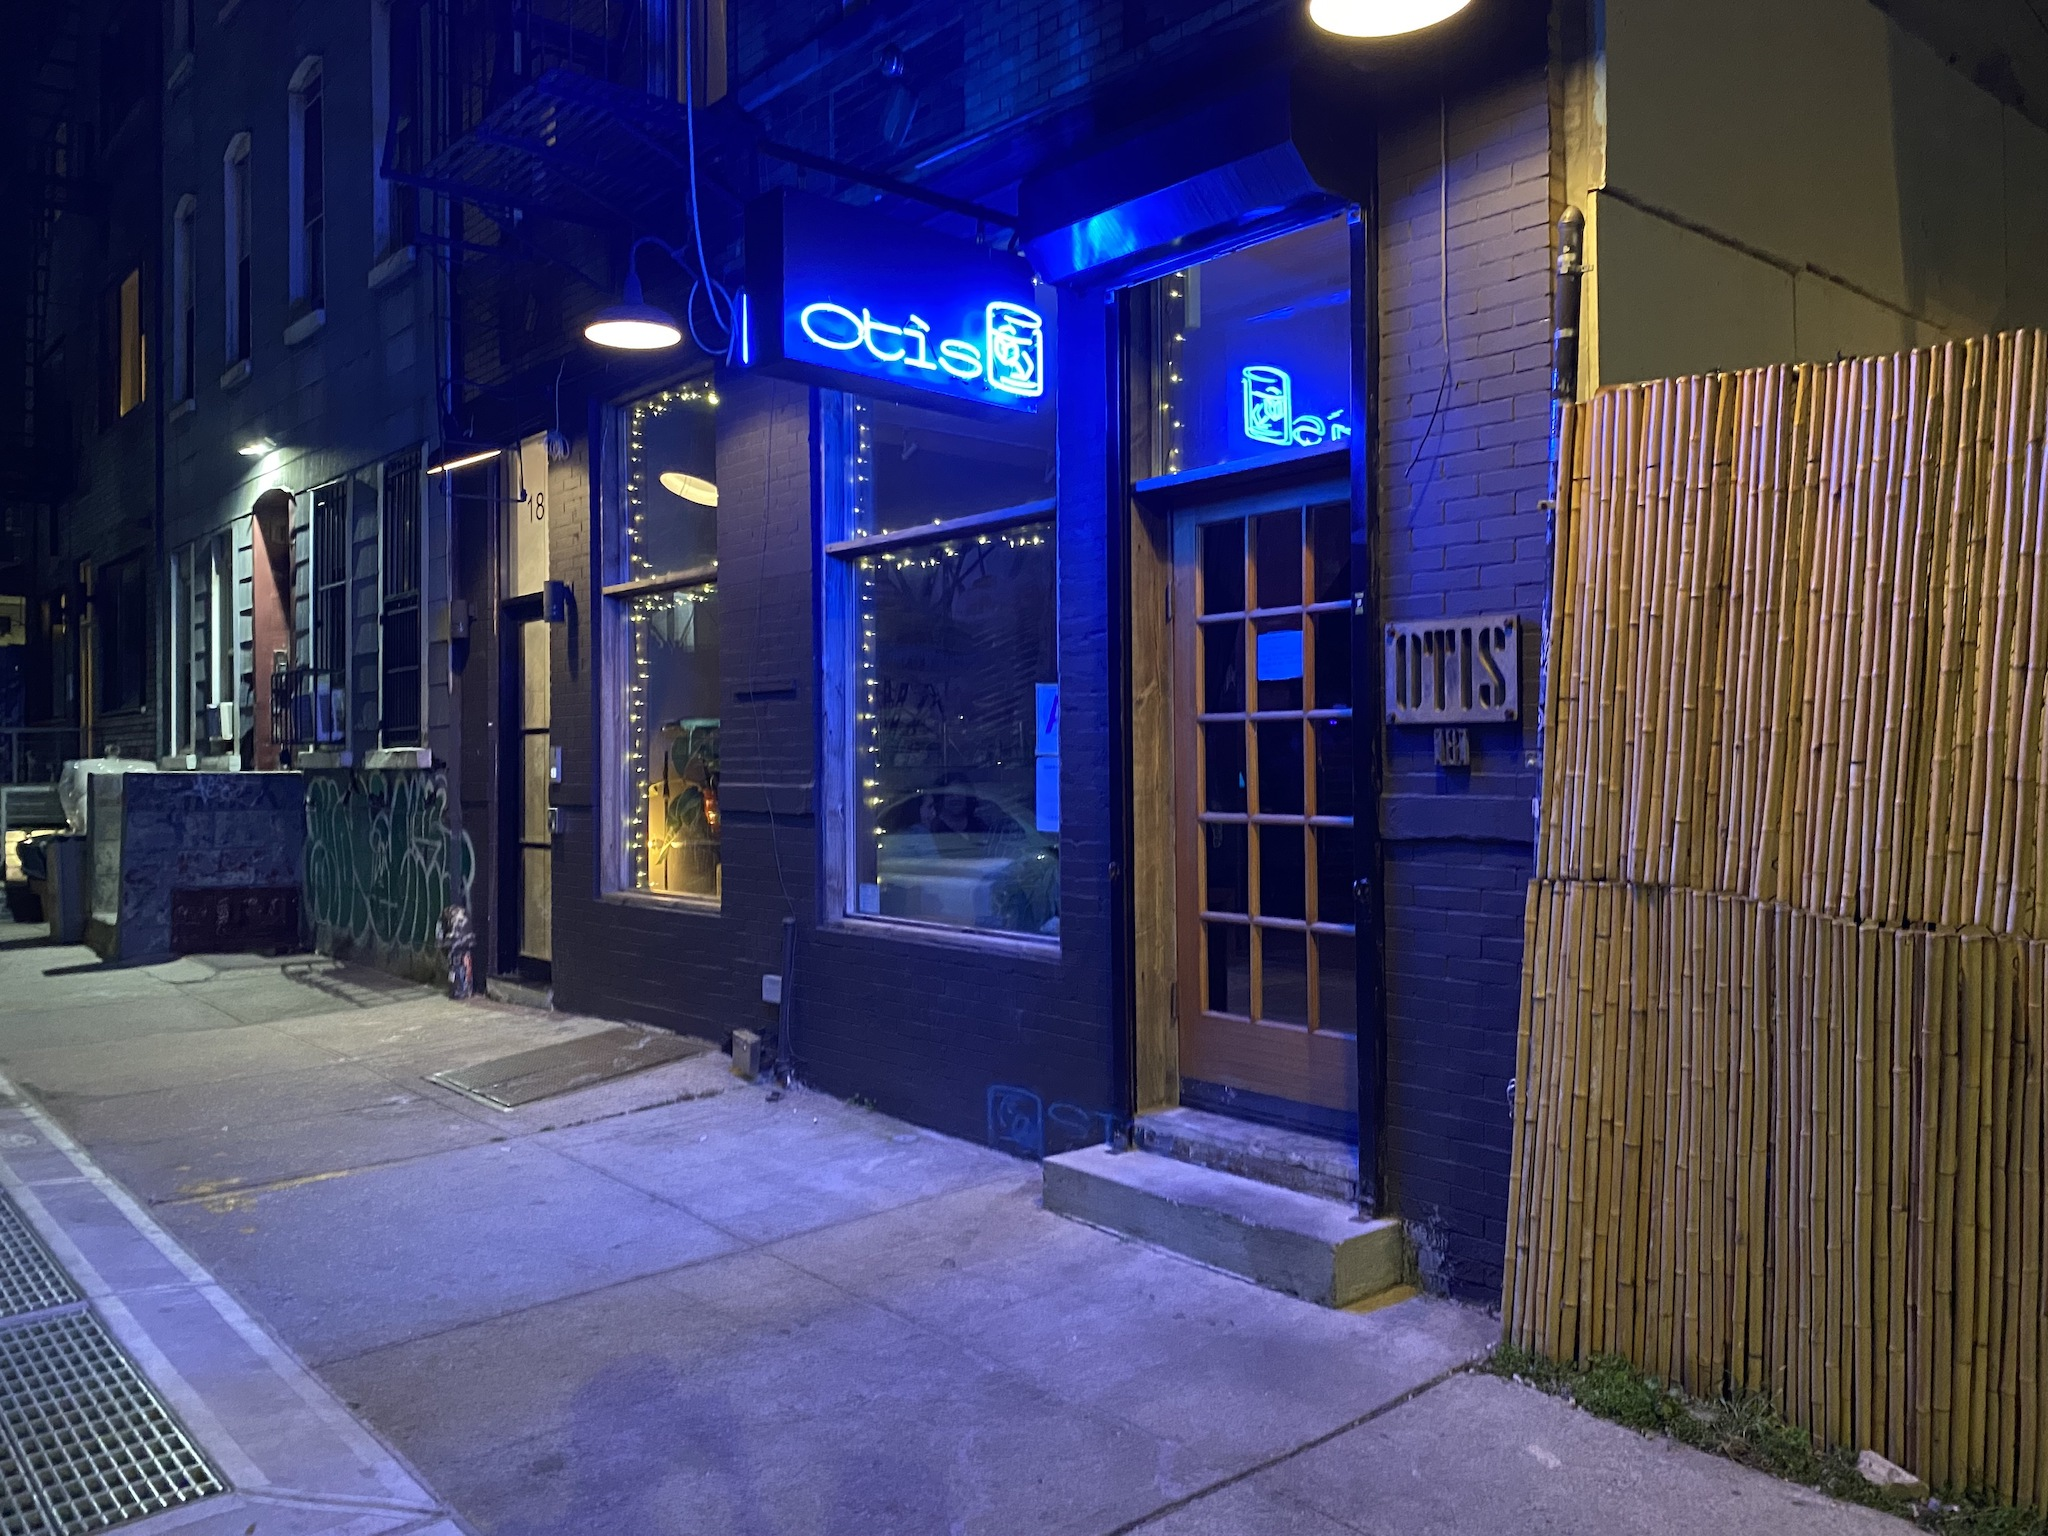 A storefront shot with blue neon lighting hanging above the door.